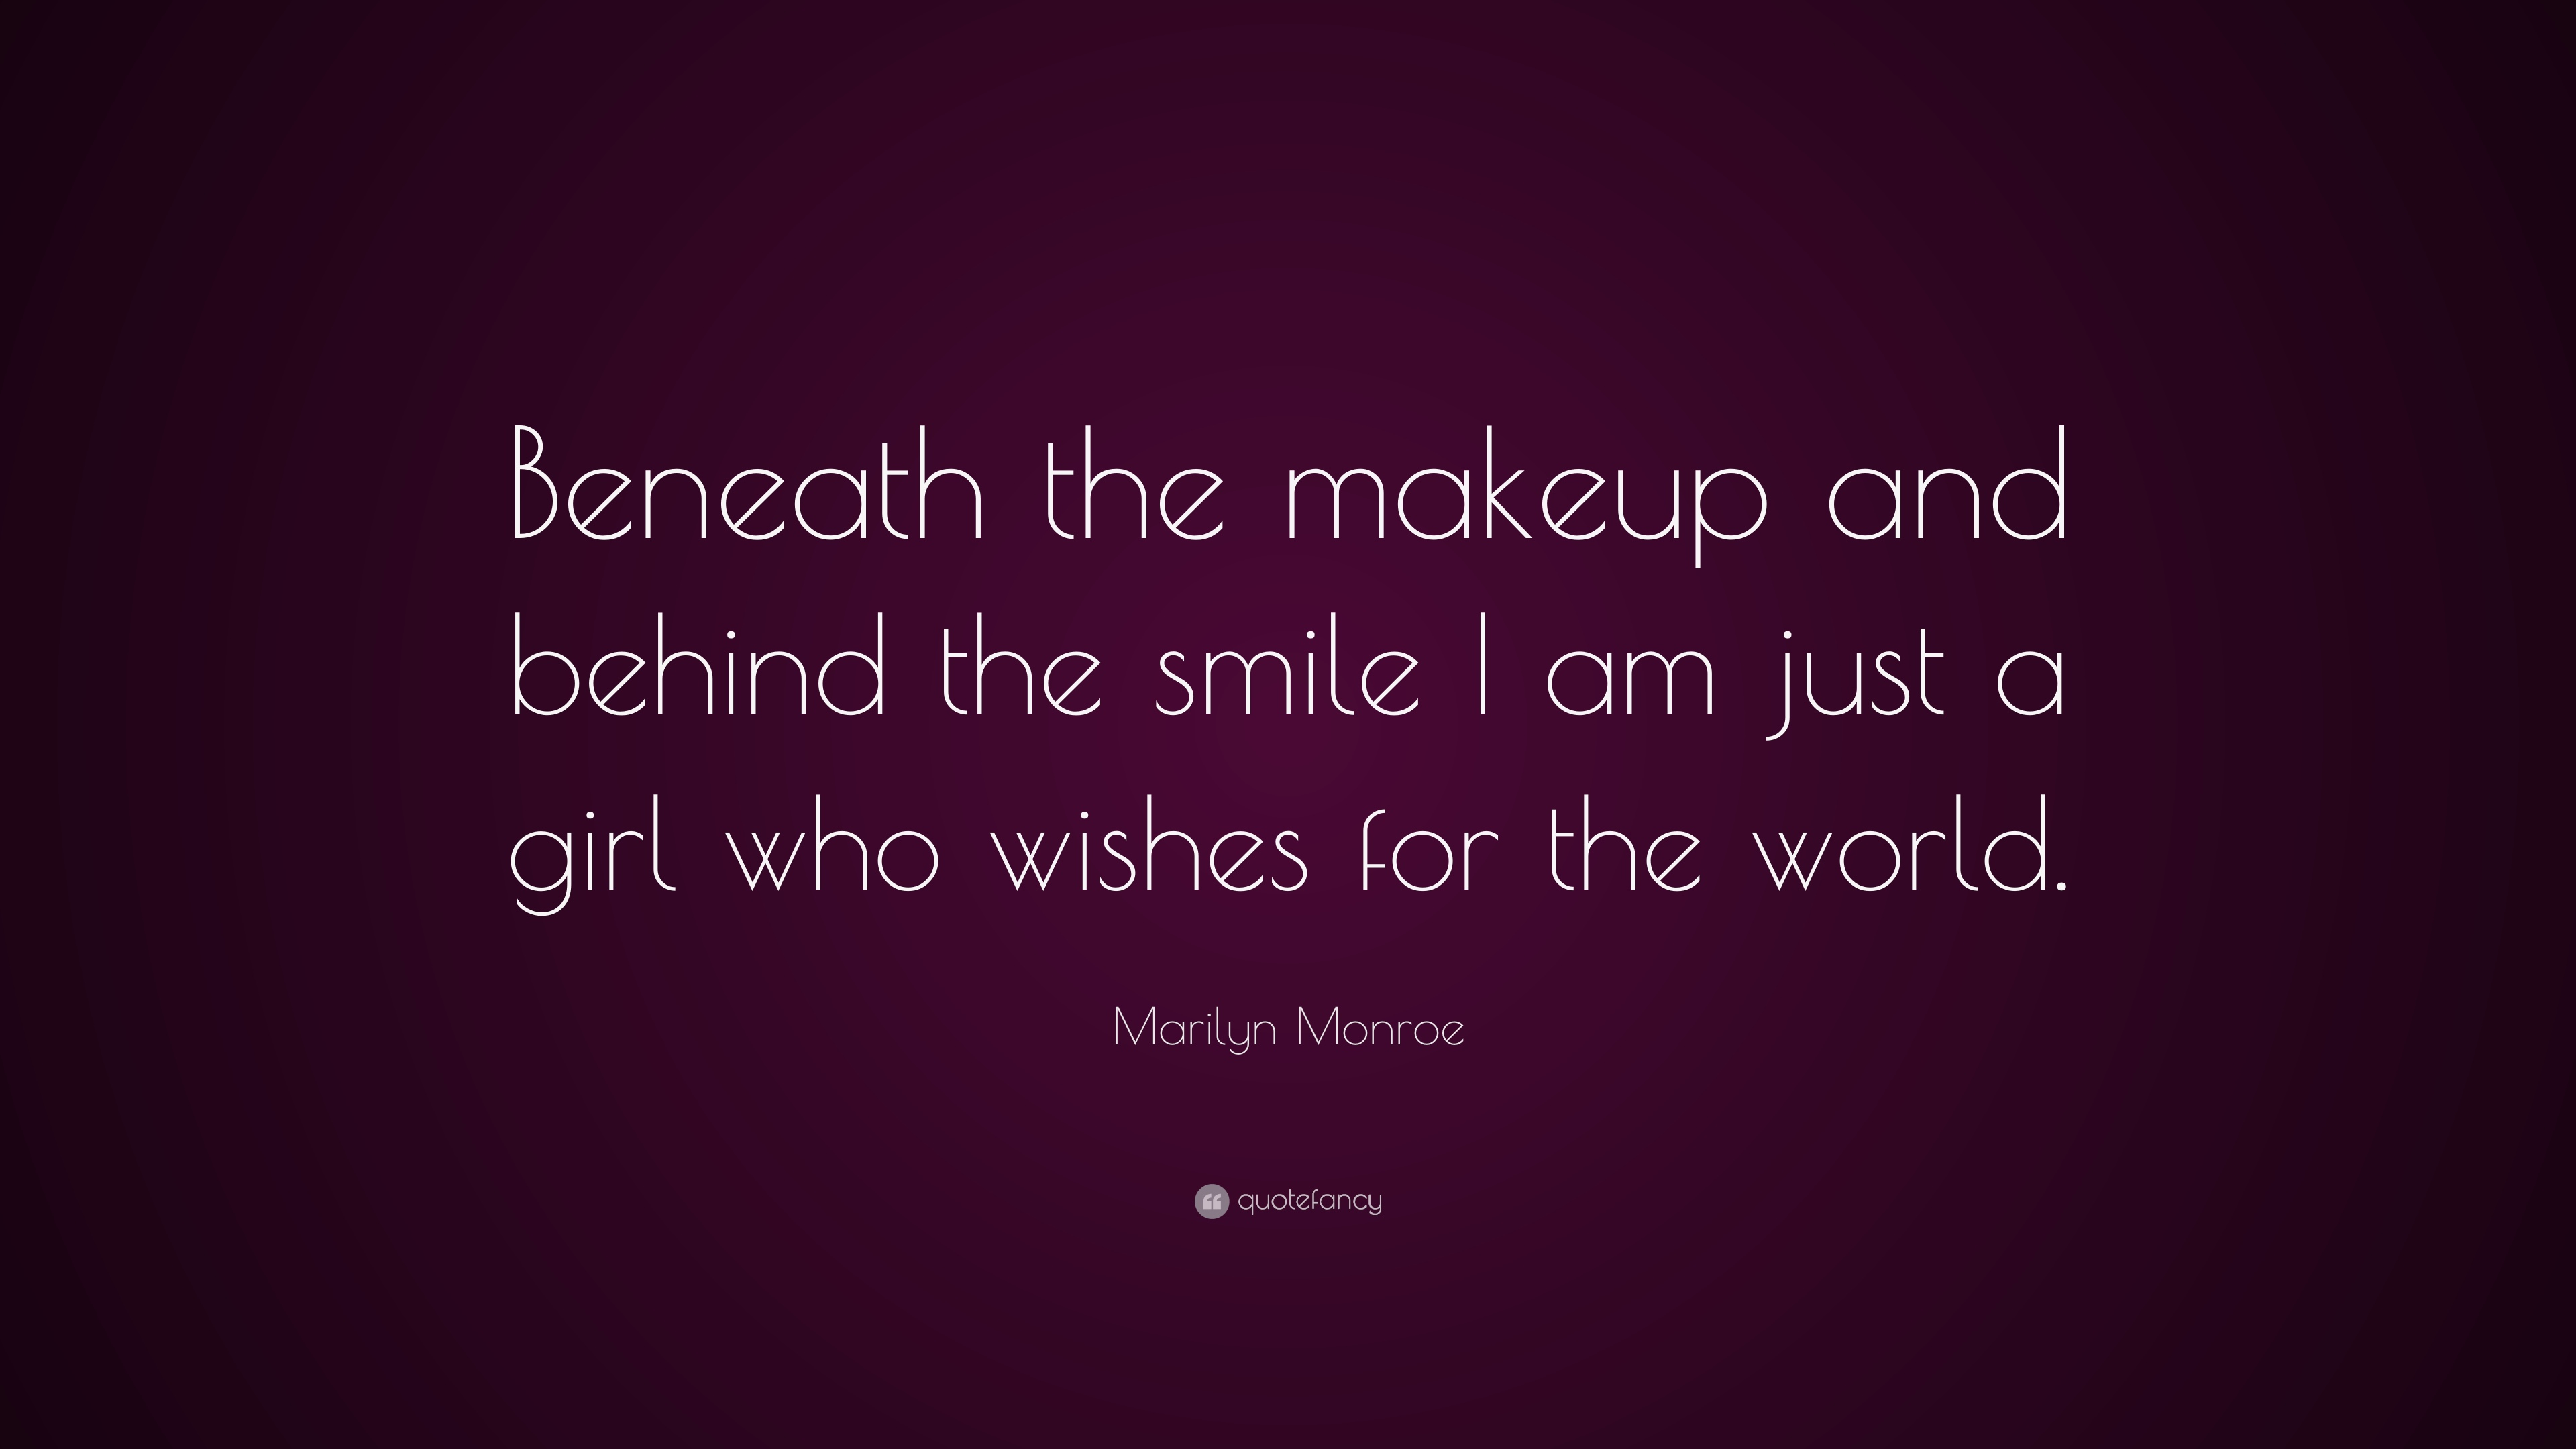 Marilyn Monroe Quote Beneath The Makeup And Behind The Smile I Am